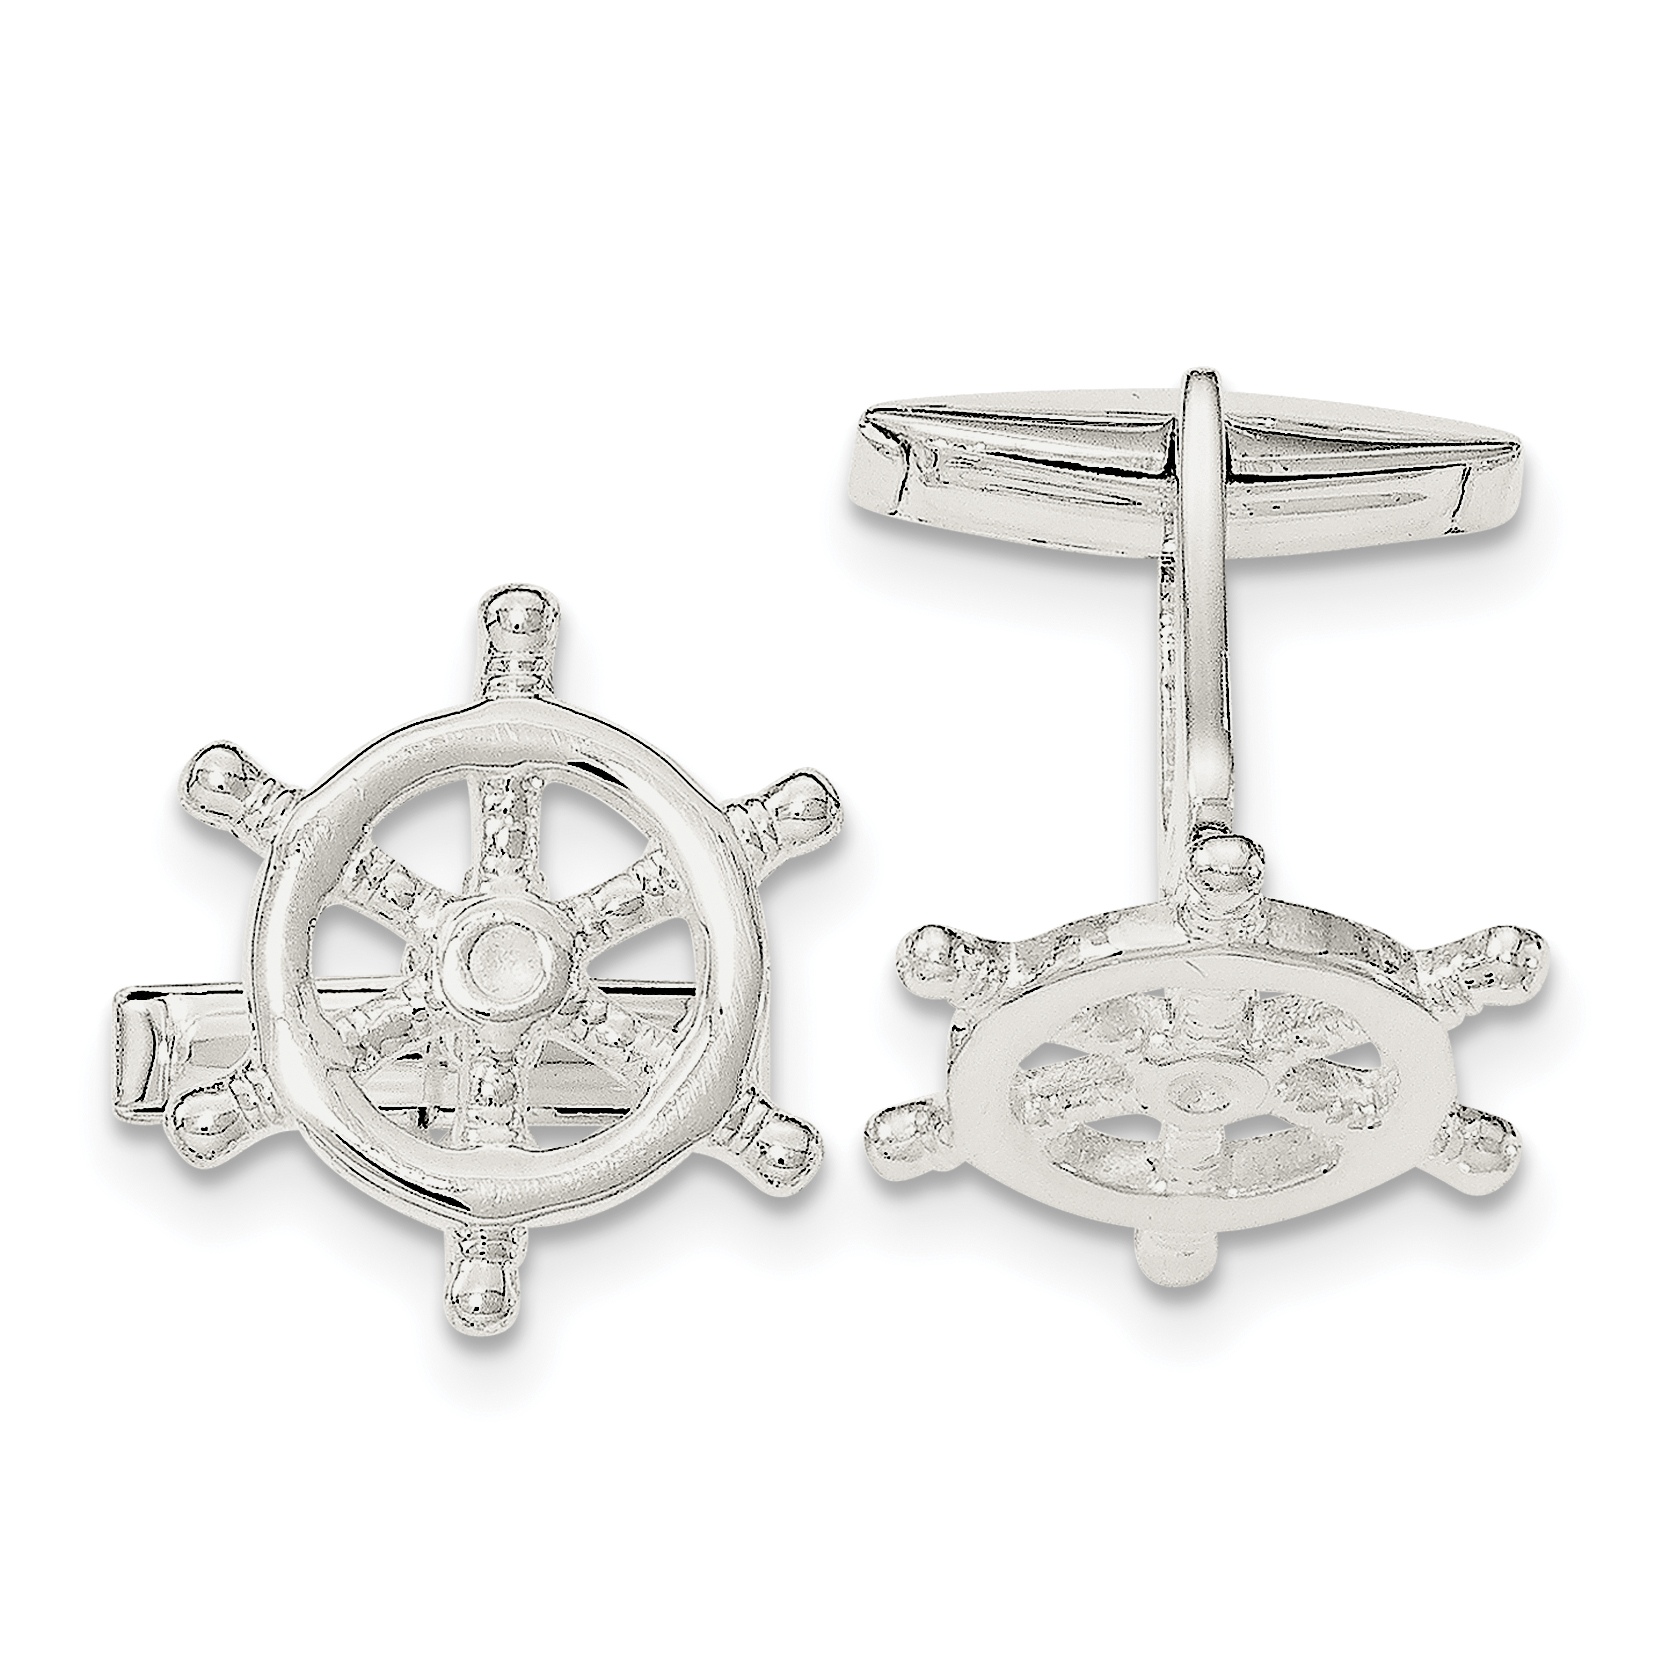 Sterling Silver Captains Wheel Cuff Links